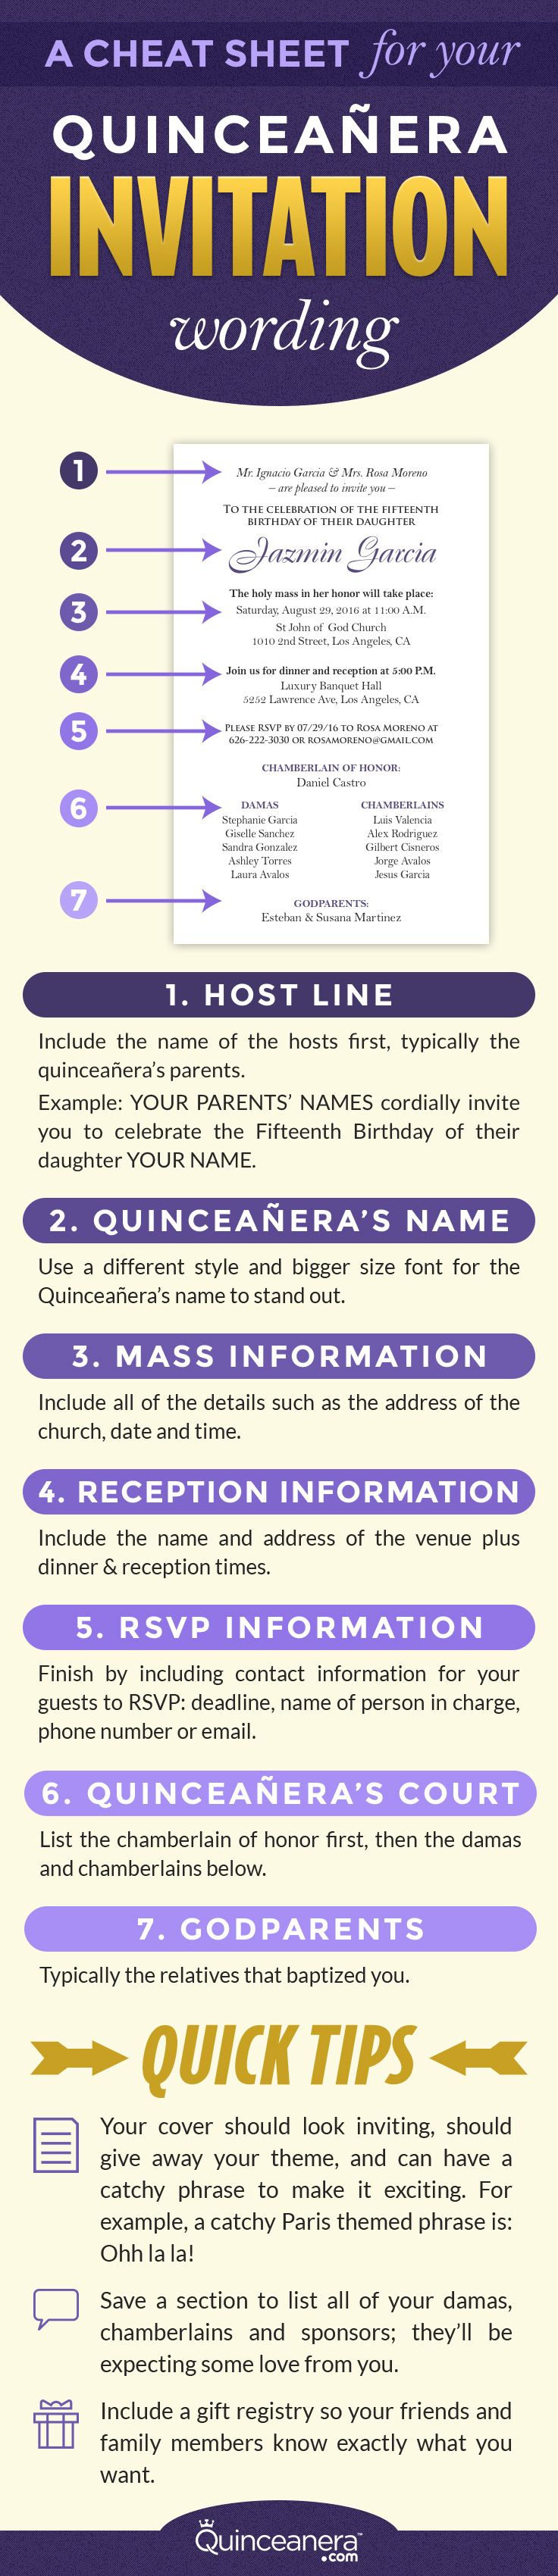 In case you haven't found your inspiration for your quinceanera invitation wording, you can't go wrong with the following examples!